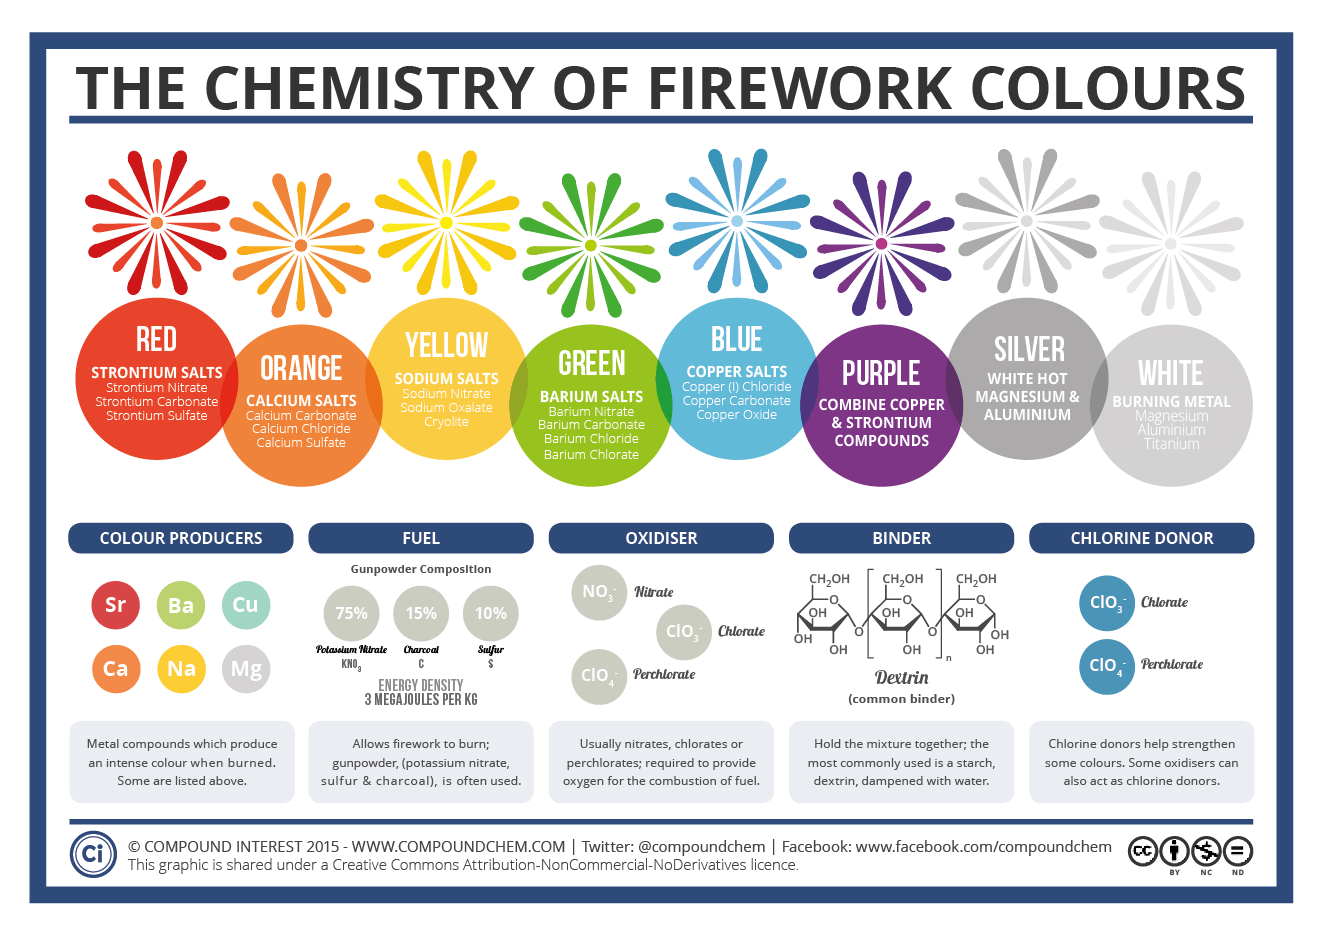 Firework Colours 2015Compound Interest   The Chemistry of Fireworks. New Colors For 2013. Home Design Ideas